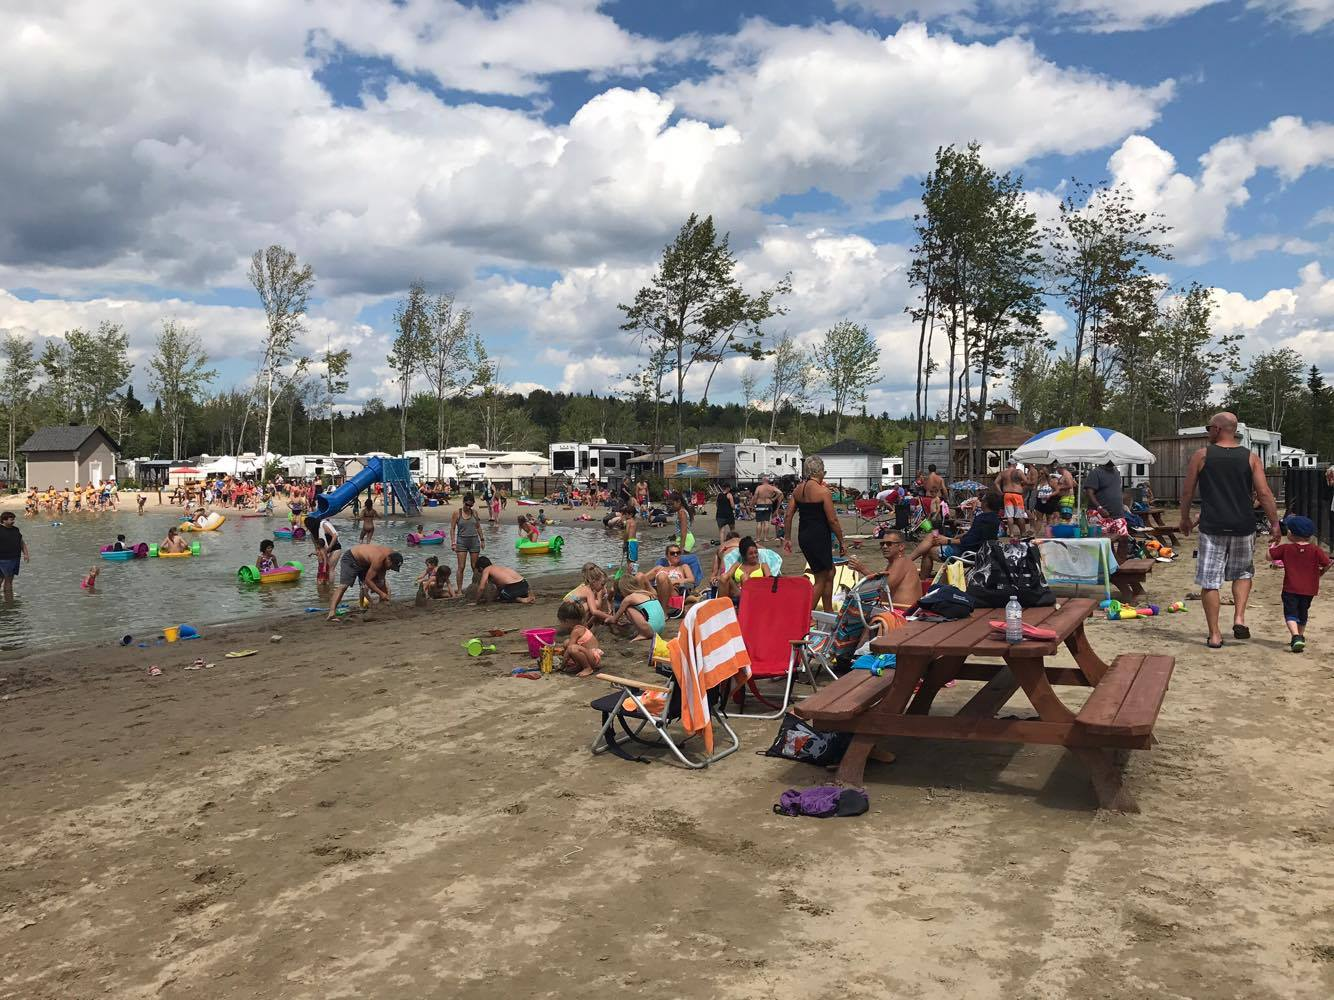 http://www.familycampgrounds.ca/wp-content/uploads/2018/01/beach-party-2017-complexe-atlantide-15.jpg